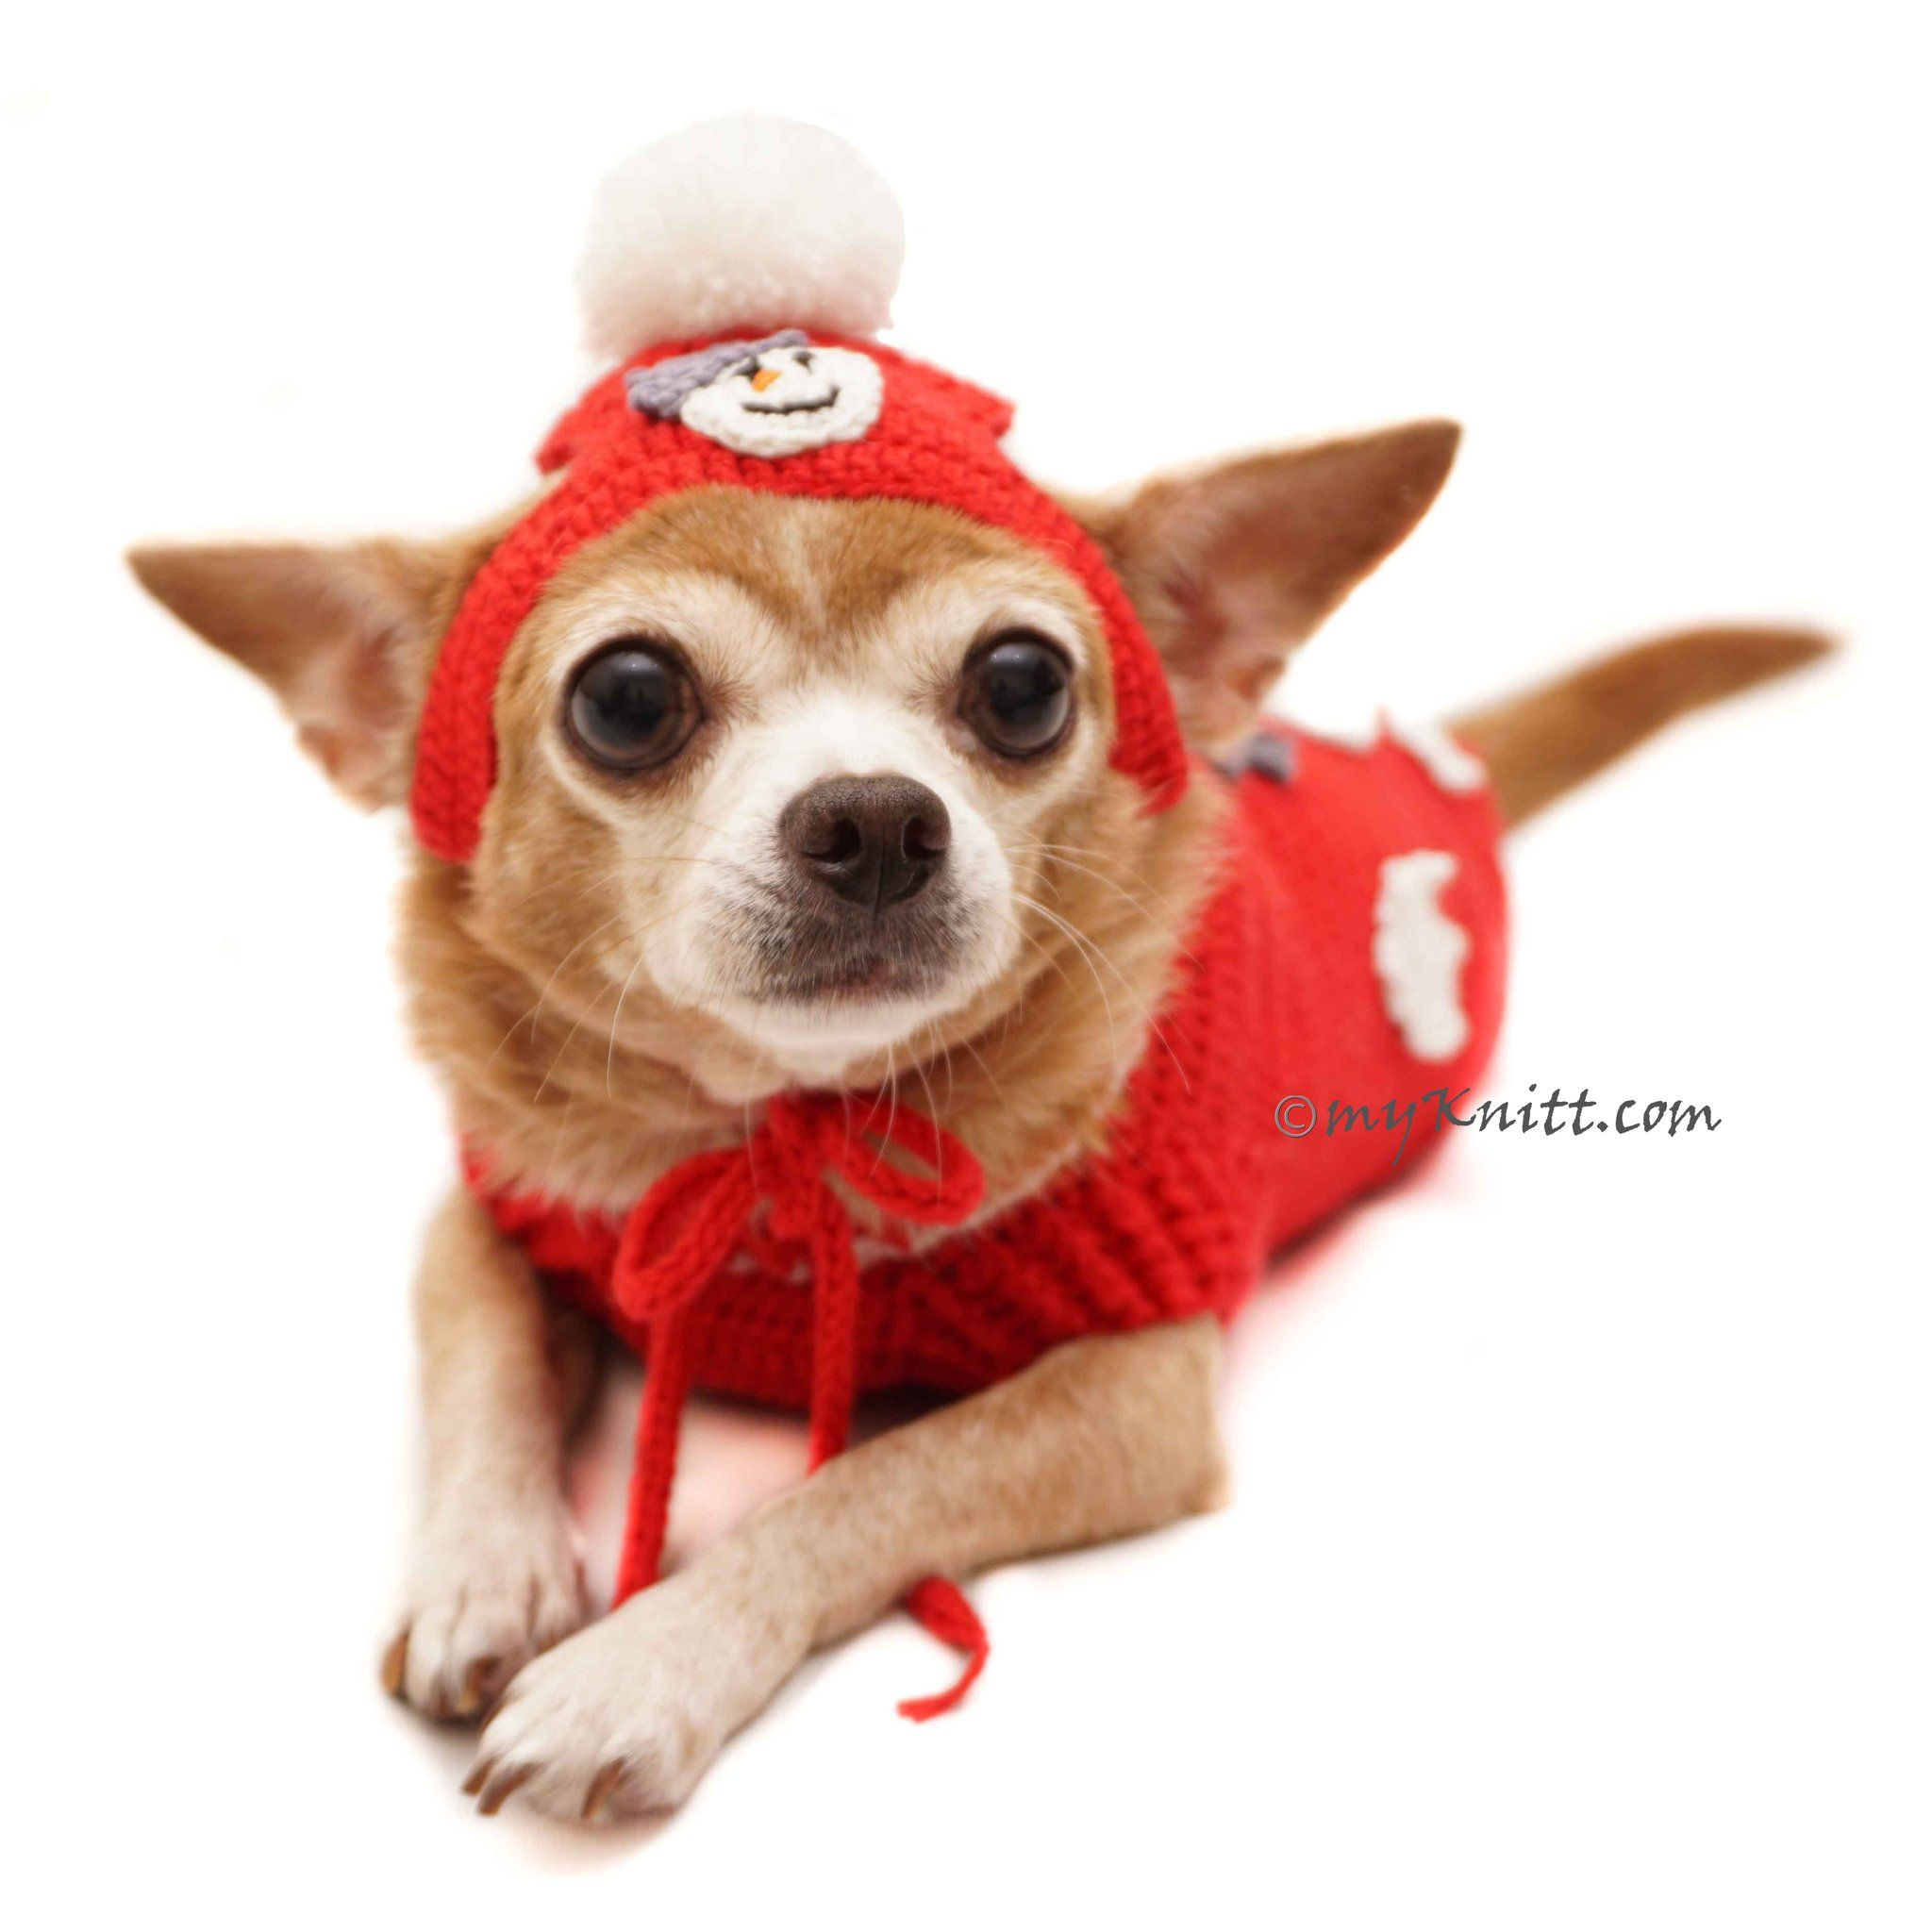 b517ff7a3ed Snowman Dog Costume with Matching Pom Pom Hat Christmas DF90 by Myknitt (4)   chihuahua  cutedog  funnydog